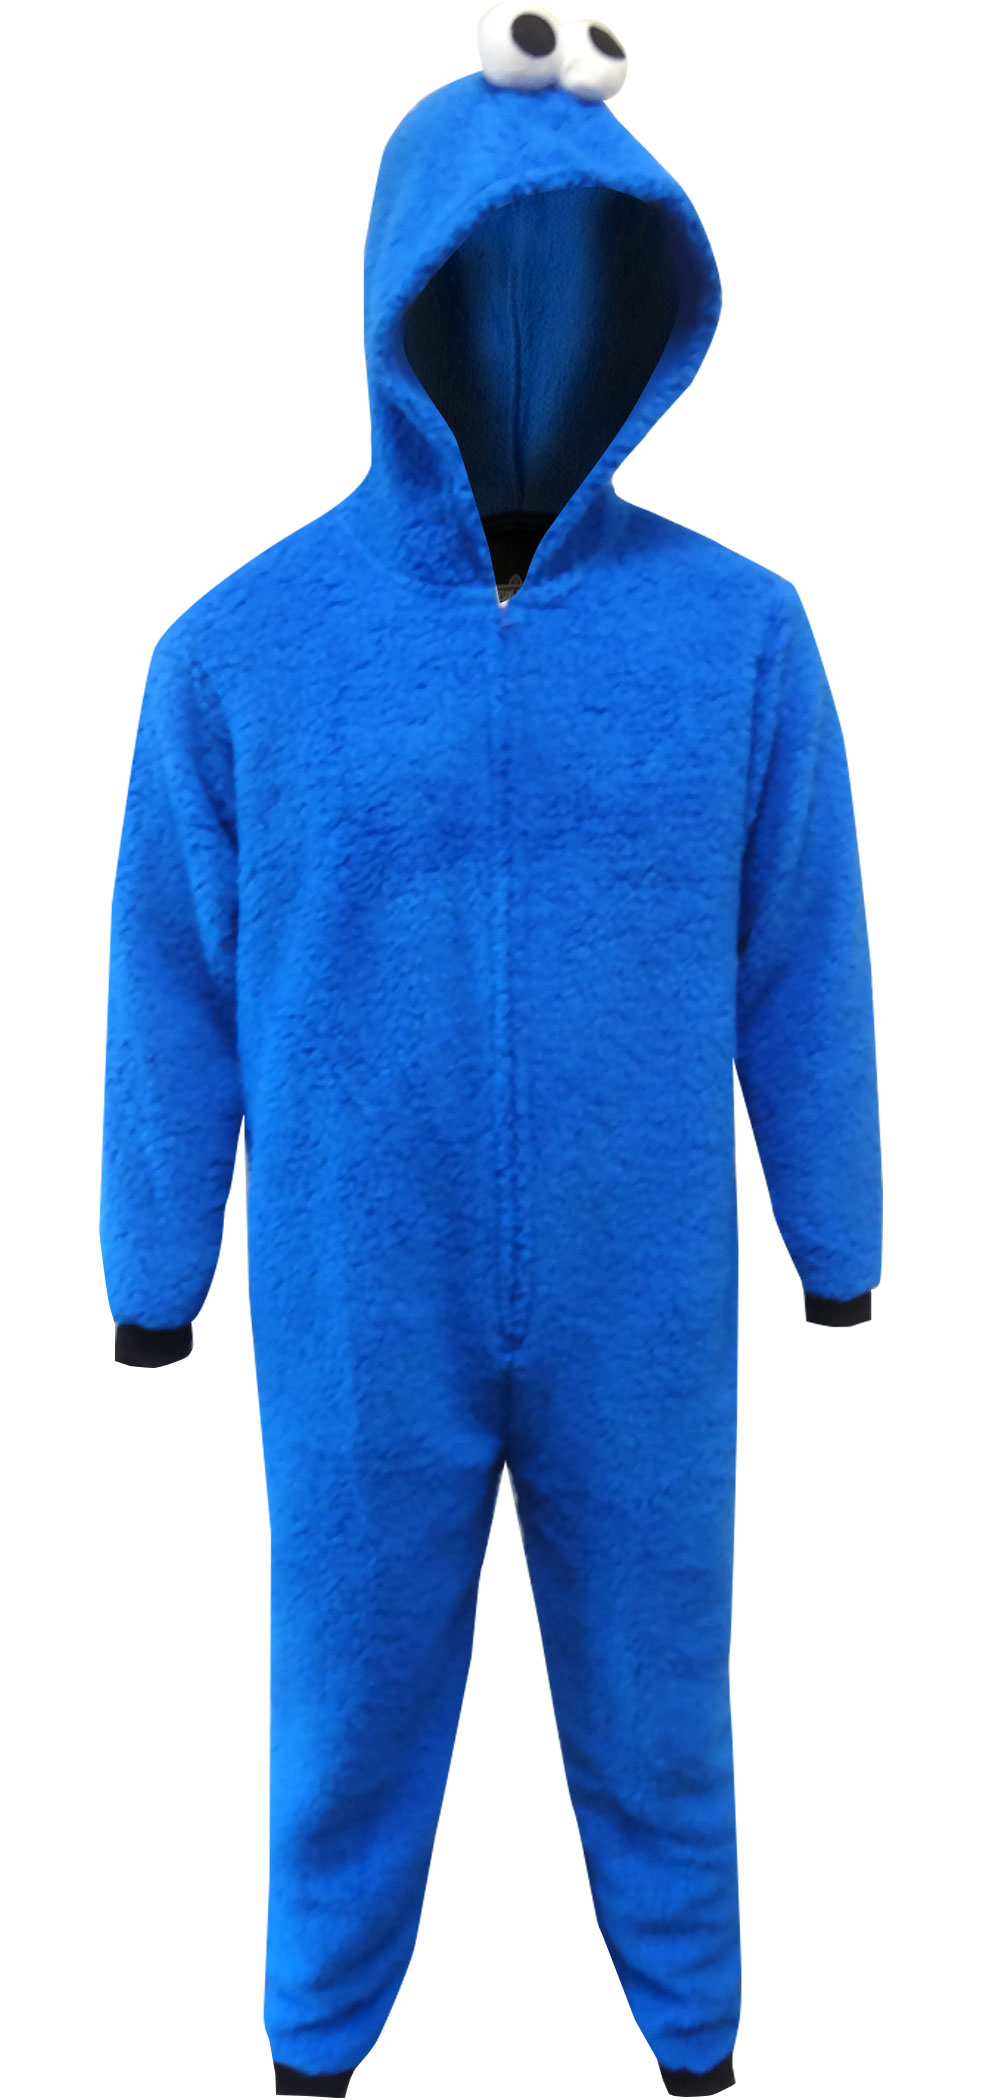 b96ecdec665f Footie Pajamas for Men- Adult Footed Pajamas and Union Suits